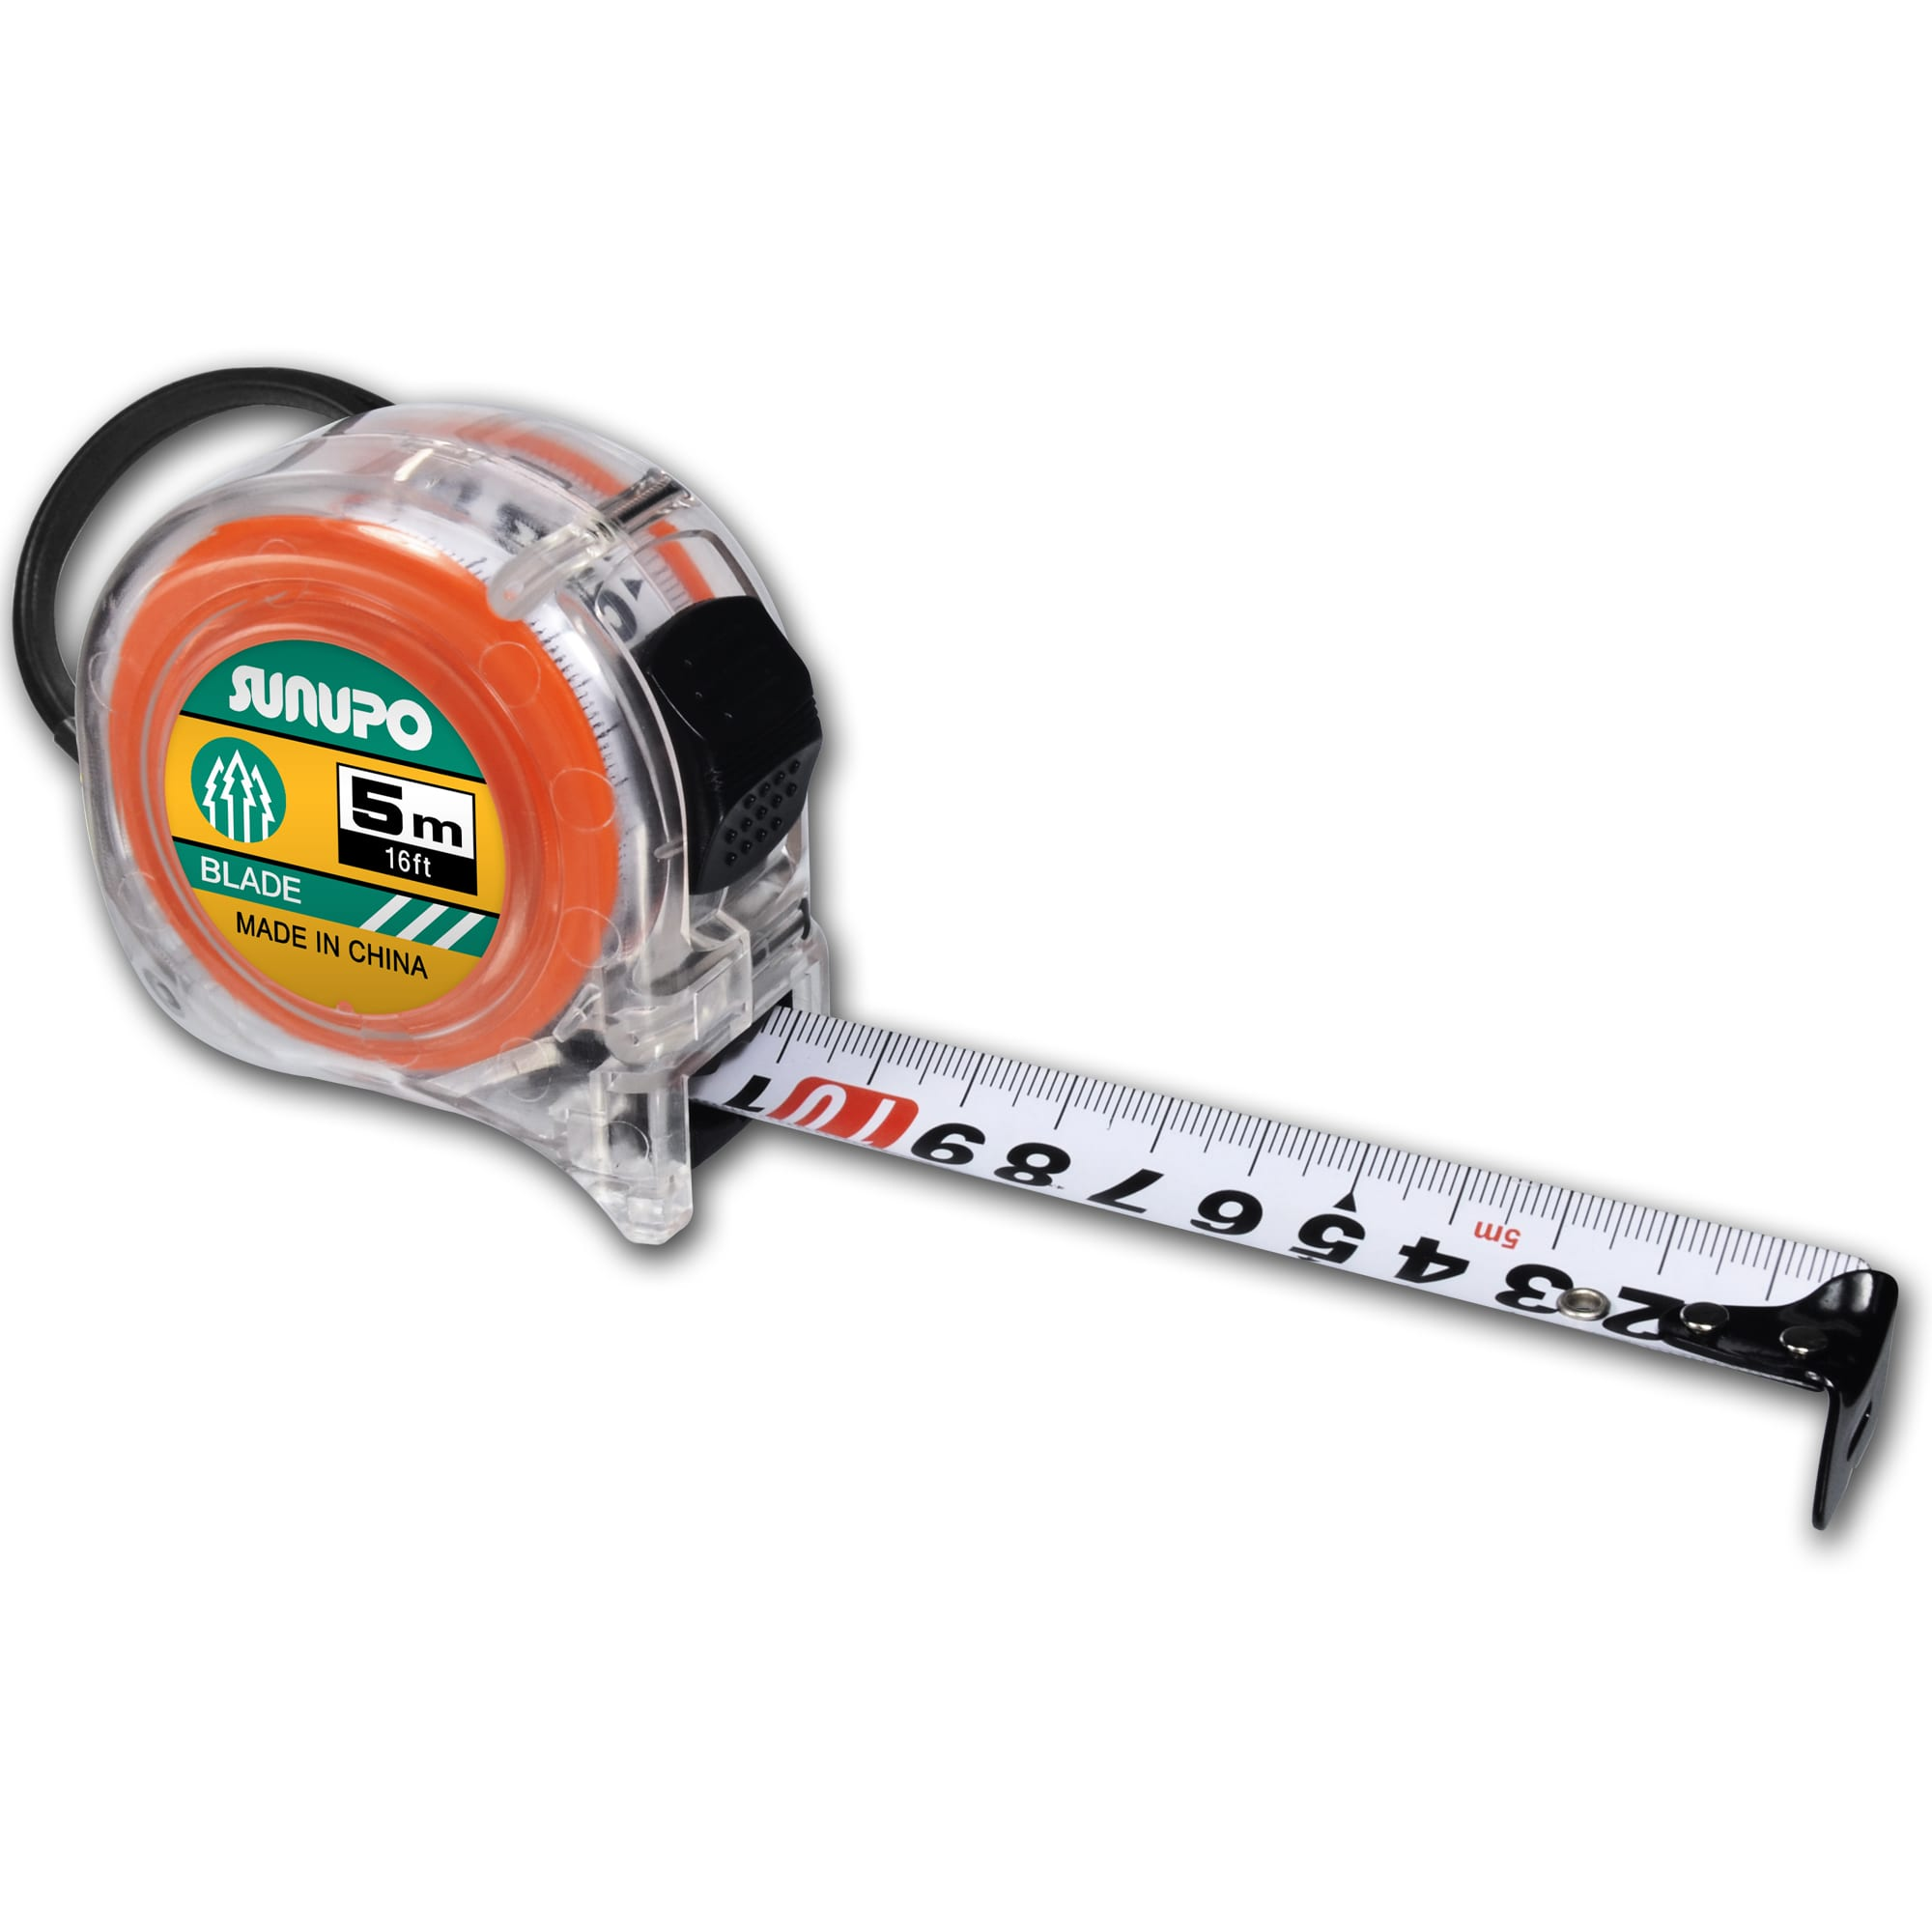 Translucent Abs Measuring Tape China